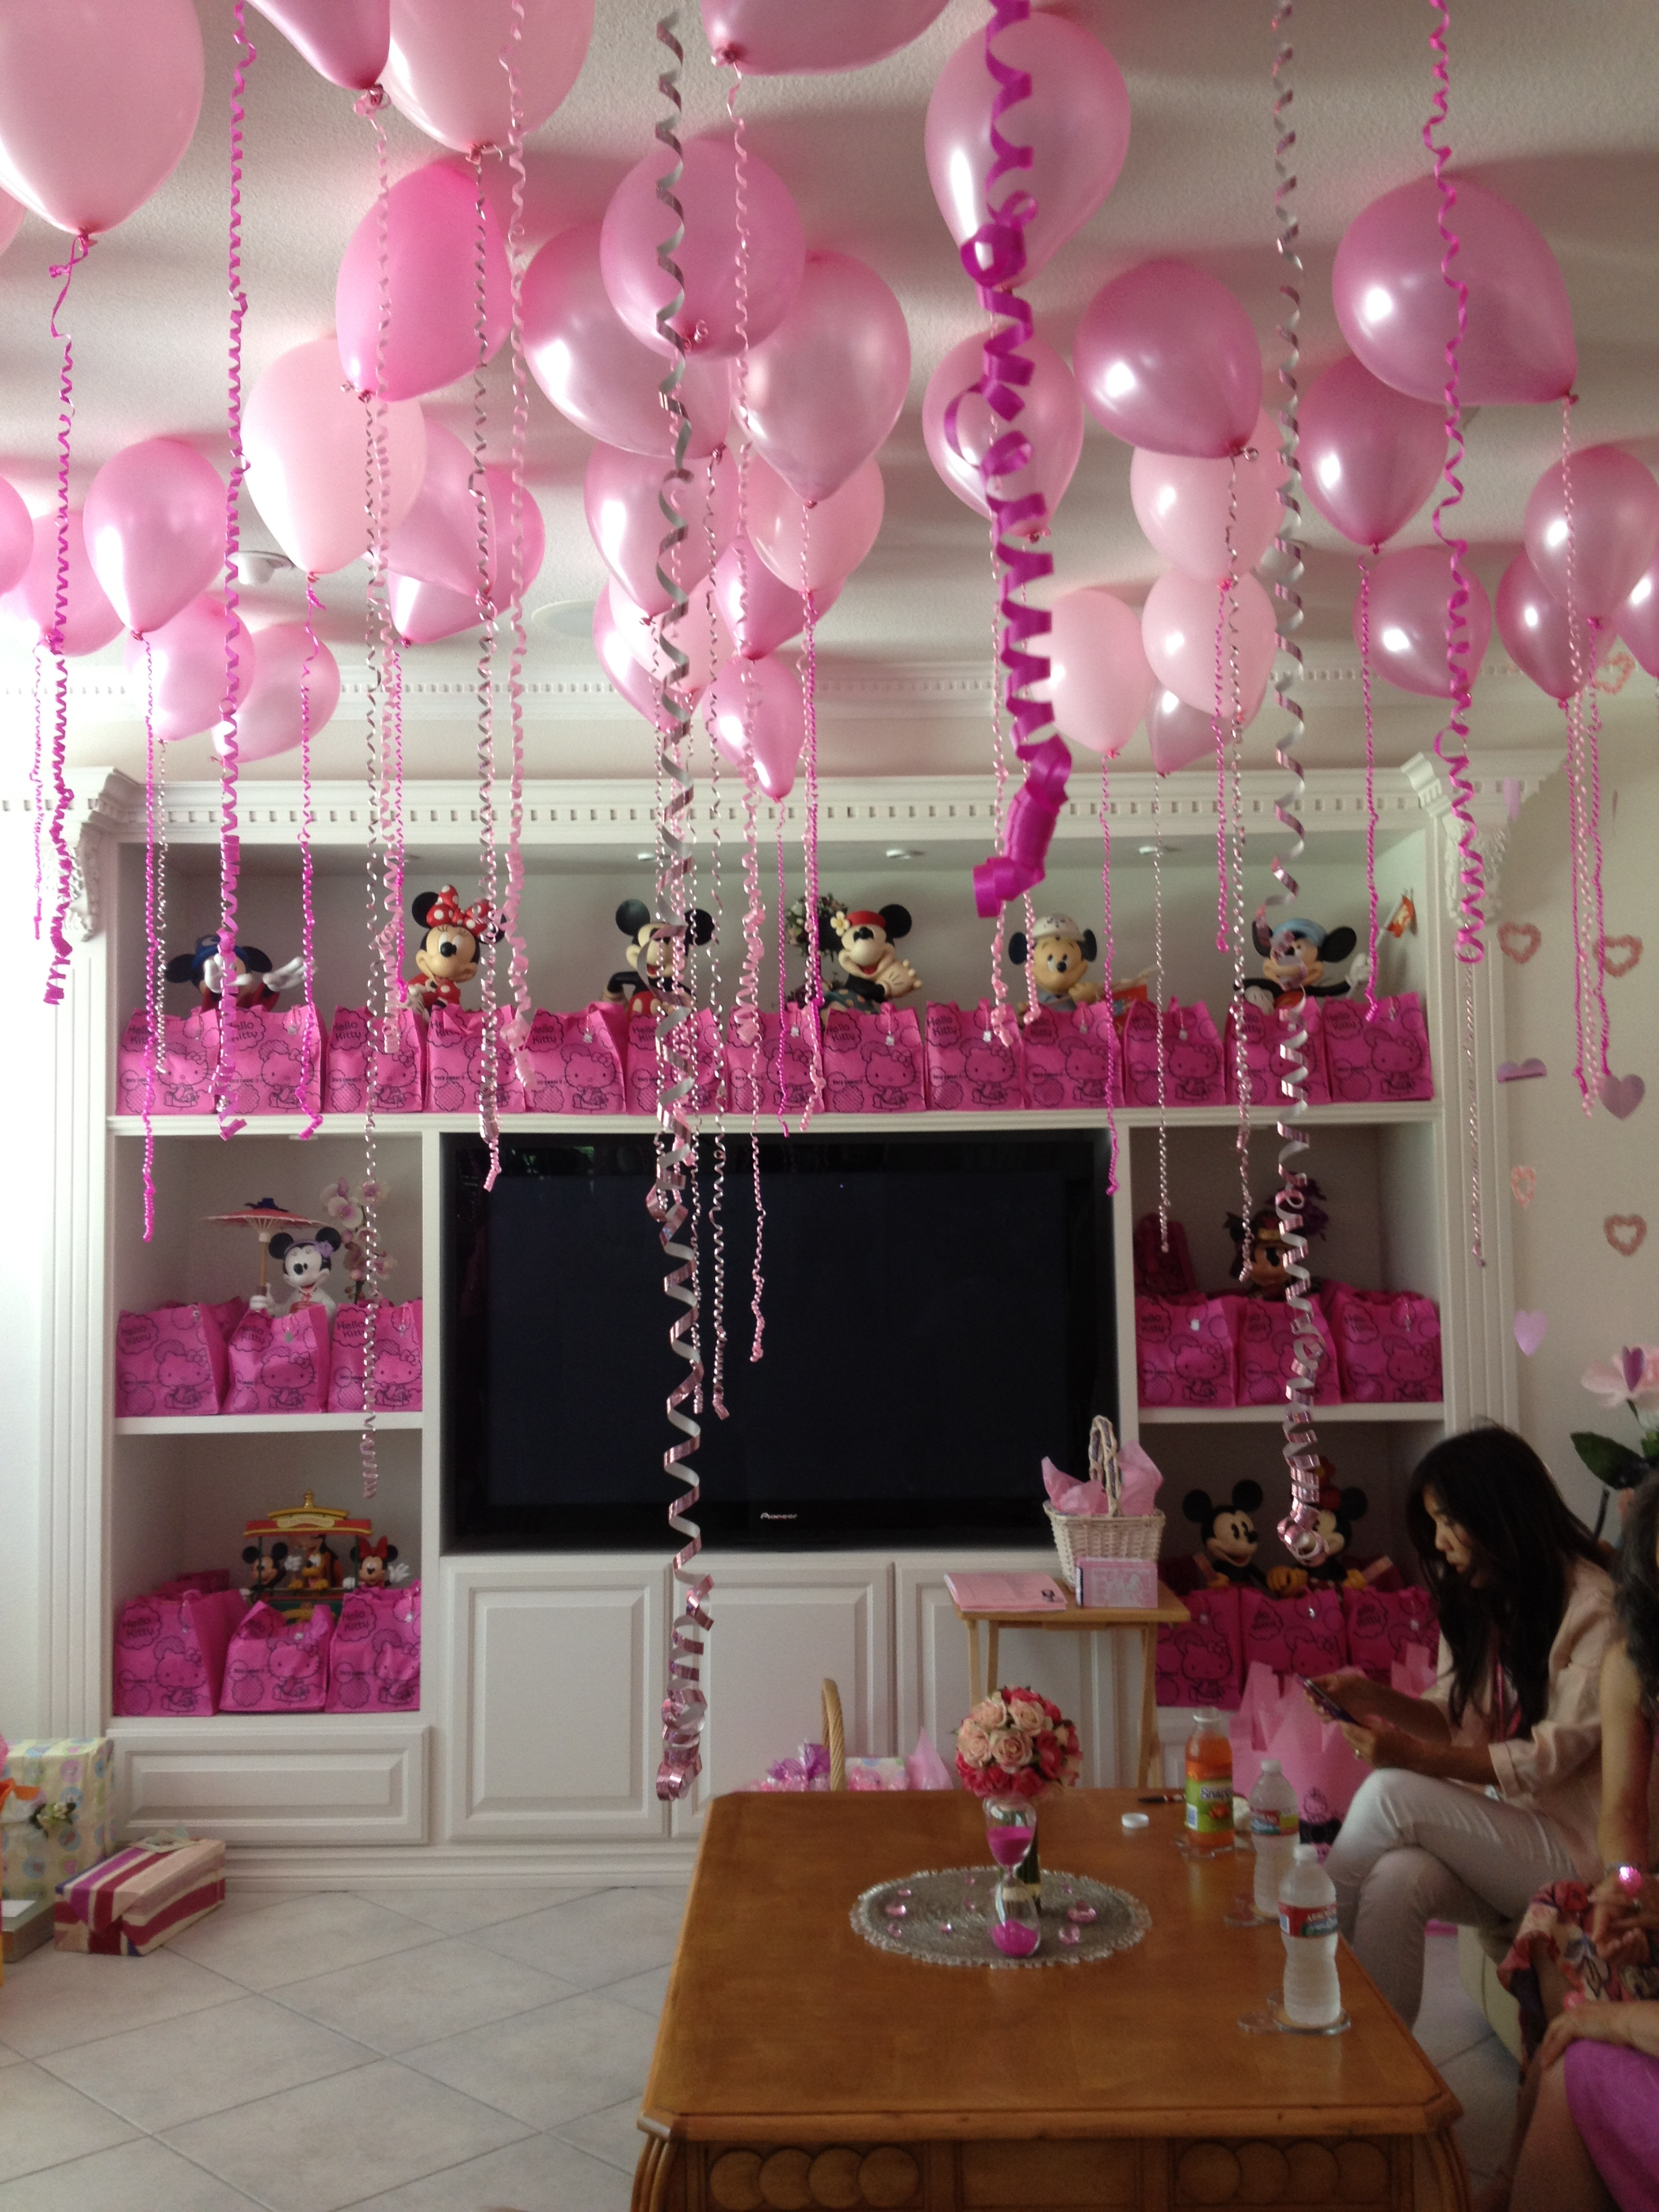 Bridal Shower Decorations Ideas Pinterest : Couple Weeks Ago I Attended A Bridal Shower That Was Hello Kitty .